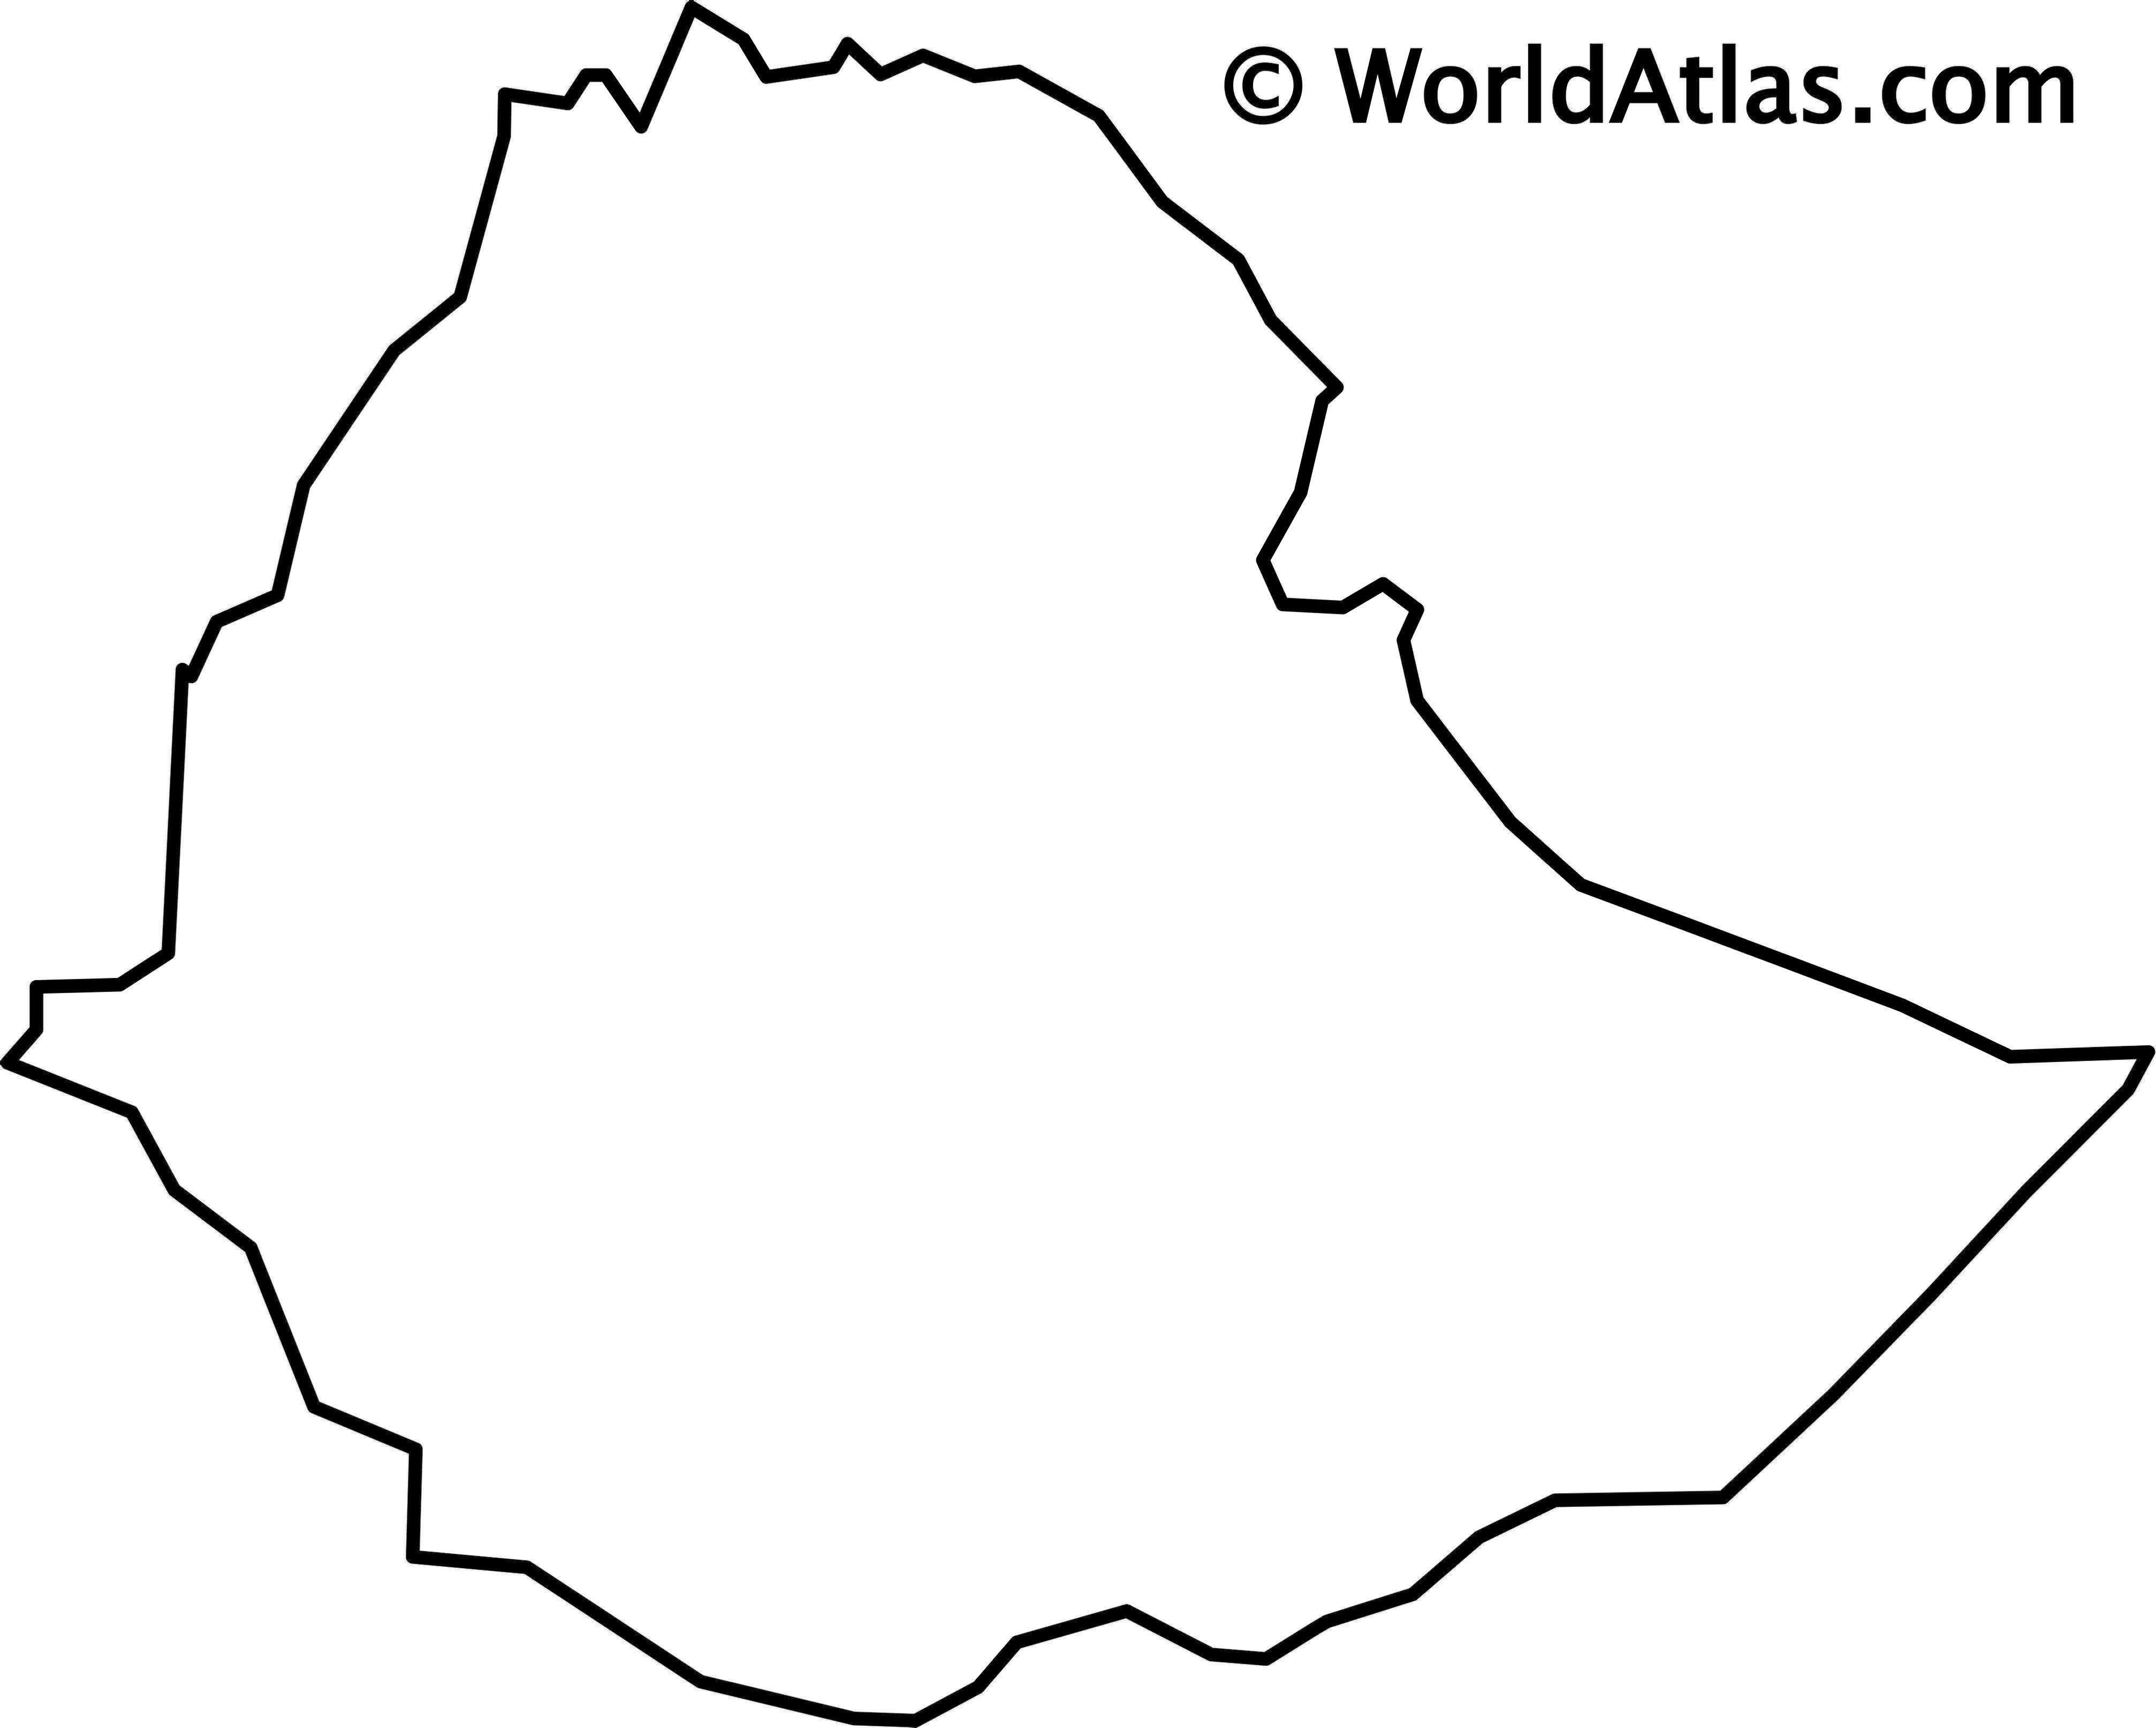 Blank Outline Map of Ethiopia